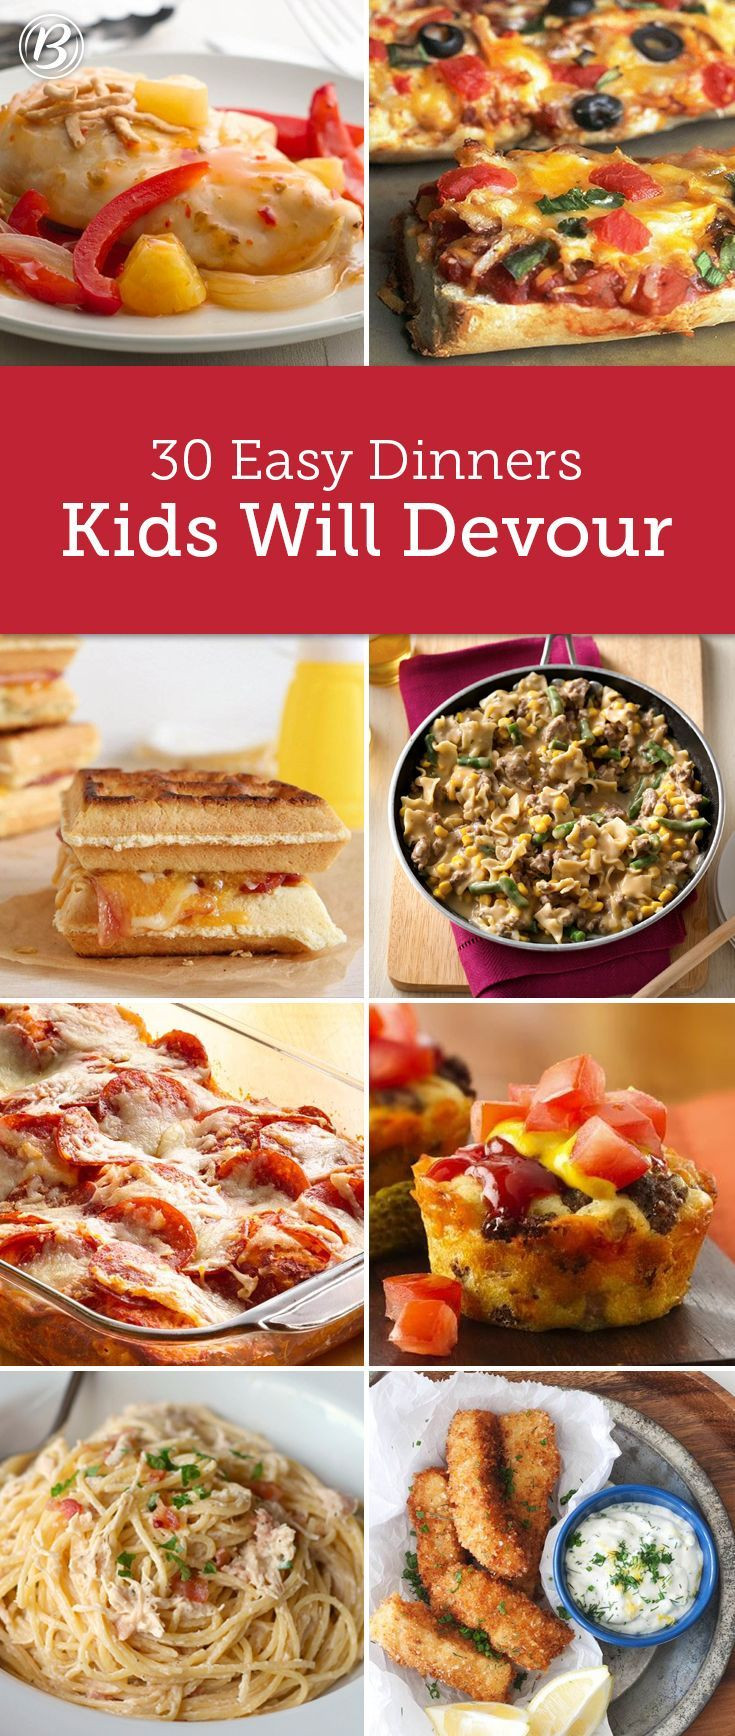 Easy Healthy Kid Friendly Dinner Recipes  25 Best Ideas about Picky Eater Meals on Pinterest